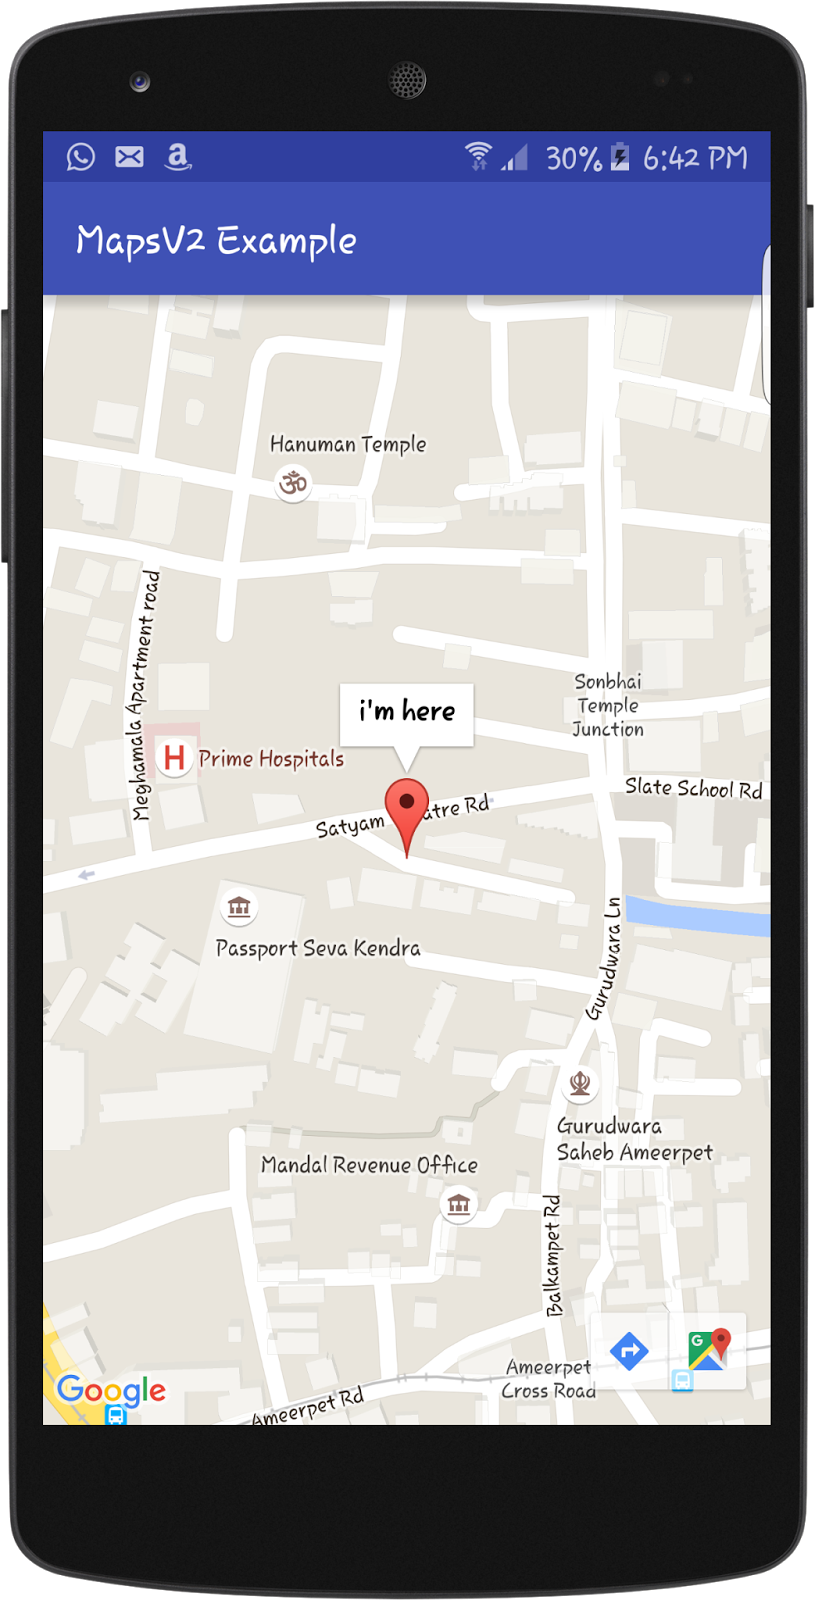 Google Map For Android Phone on emoji android phone, google play android phone, samsung galaxy s4 android phone, google account android phone, whatsapp android phone,